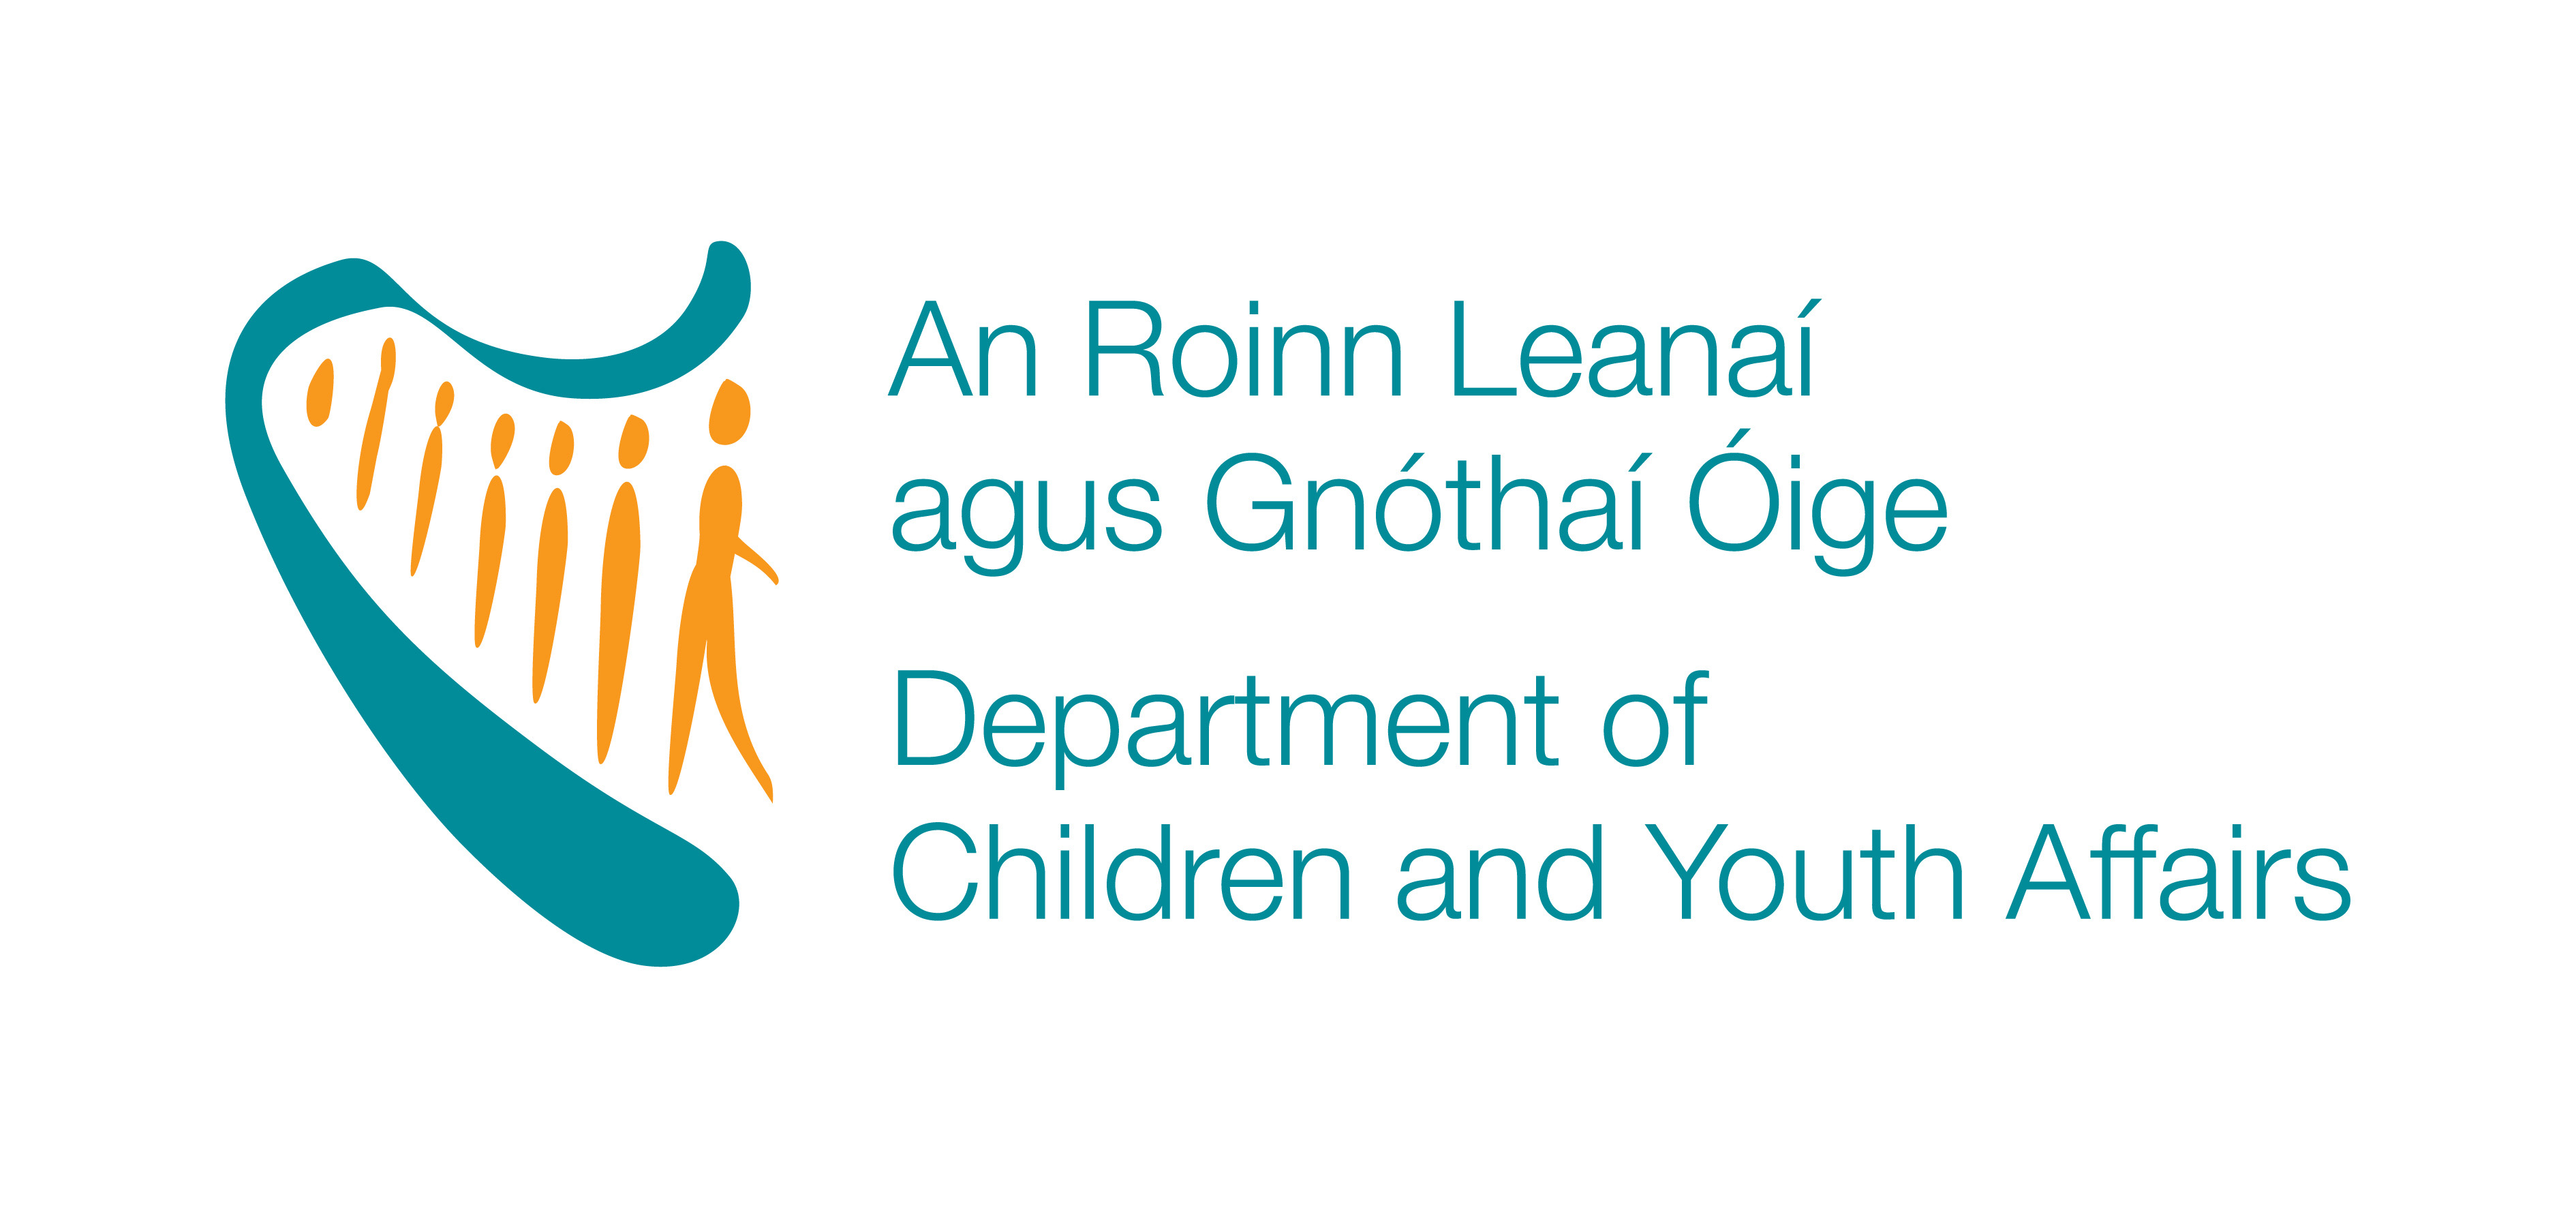 department-of-children-and-youth-affairs